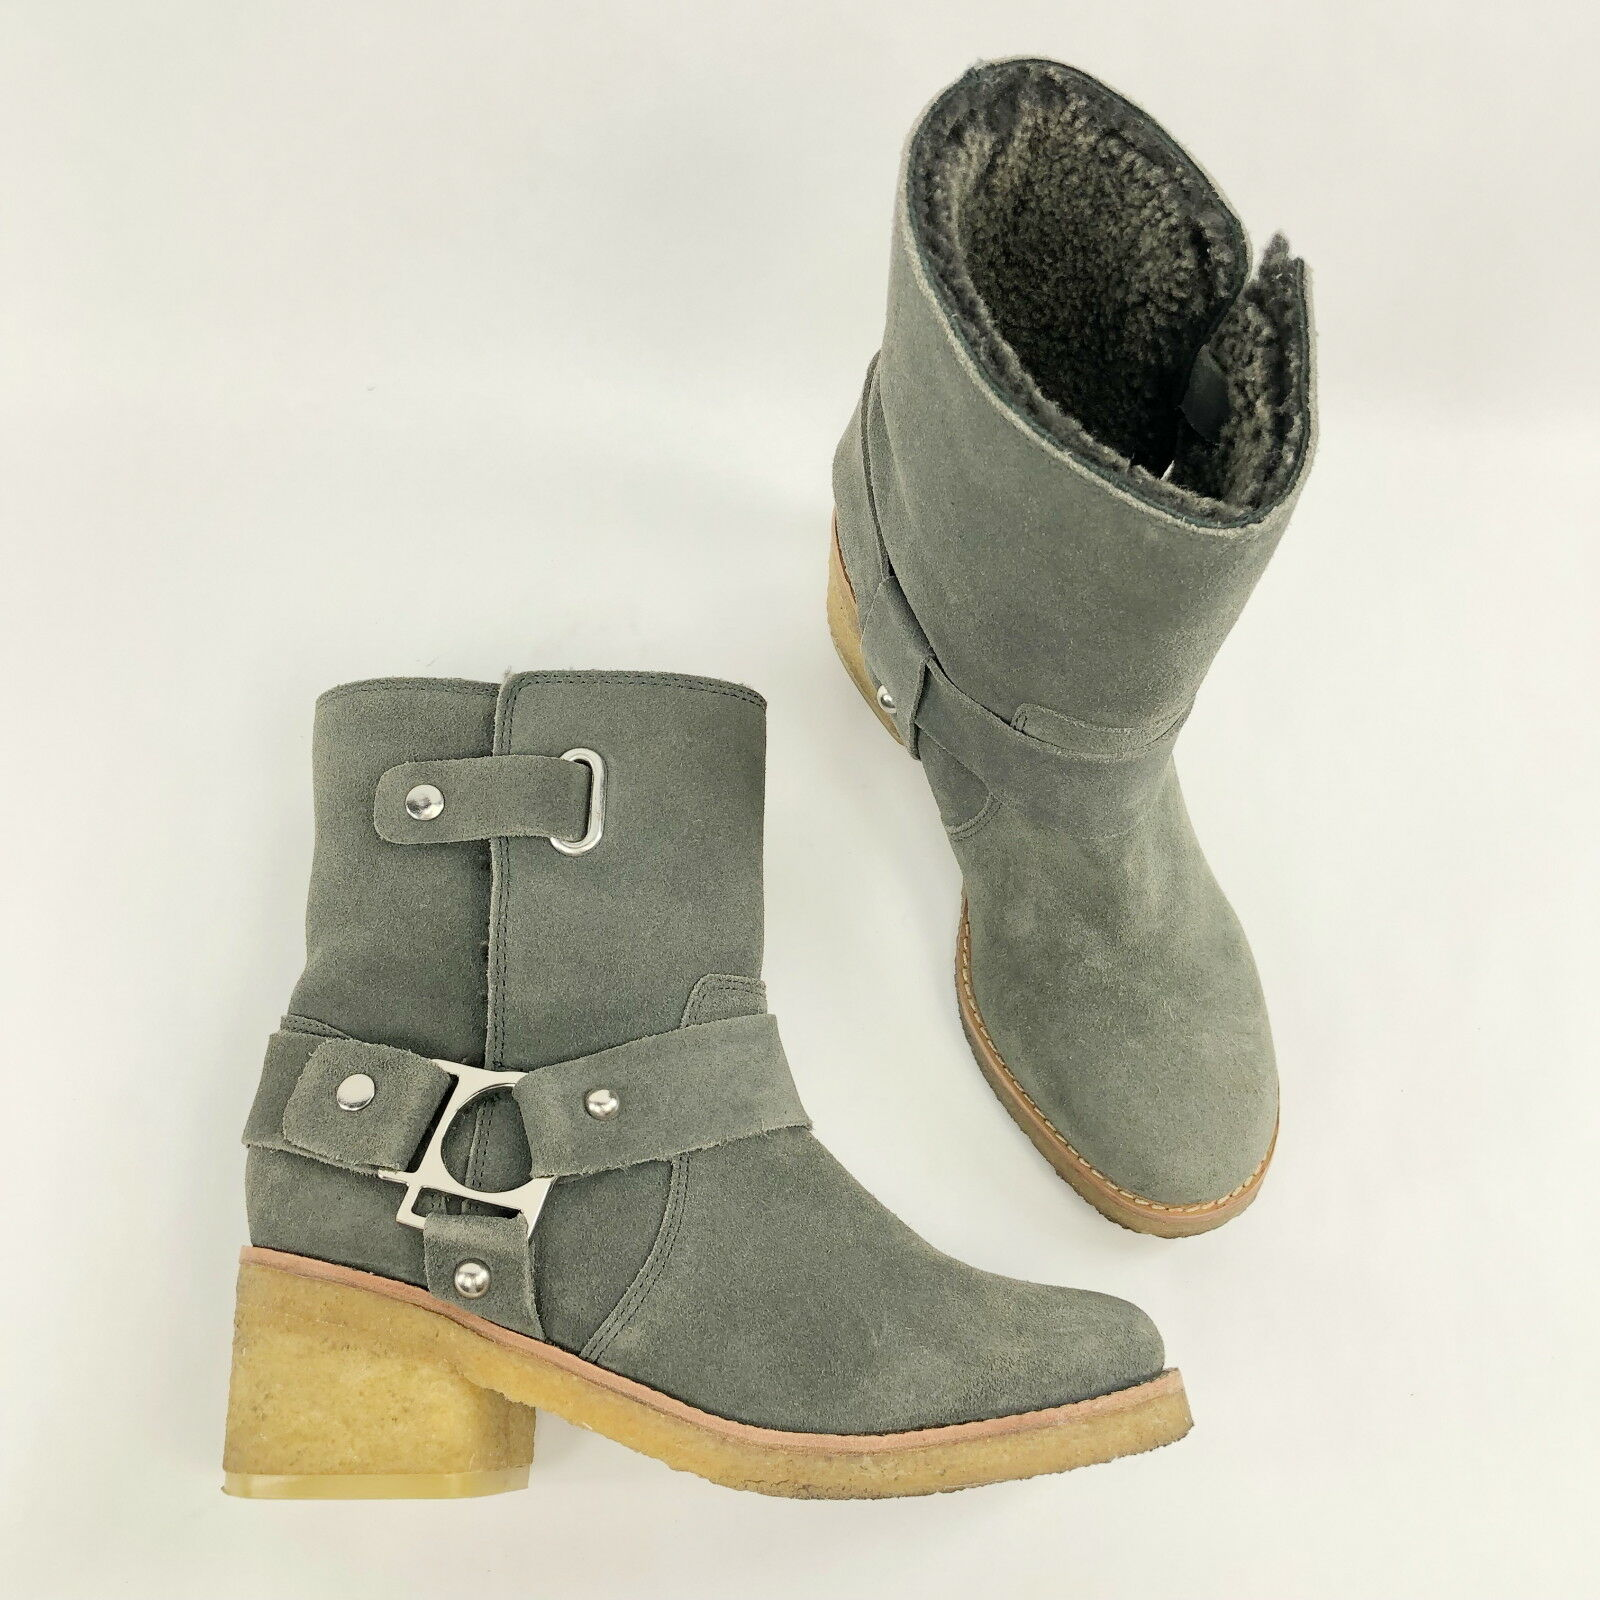 acquisti online Sigerson Morisson Donna  stivali grigio Shearling Leather Leather Leather Ankle Chunky avvioies - 6  negozio online outlet